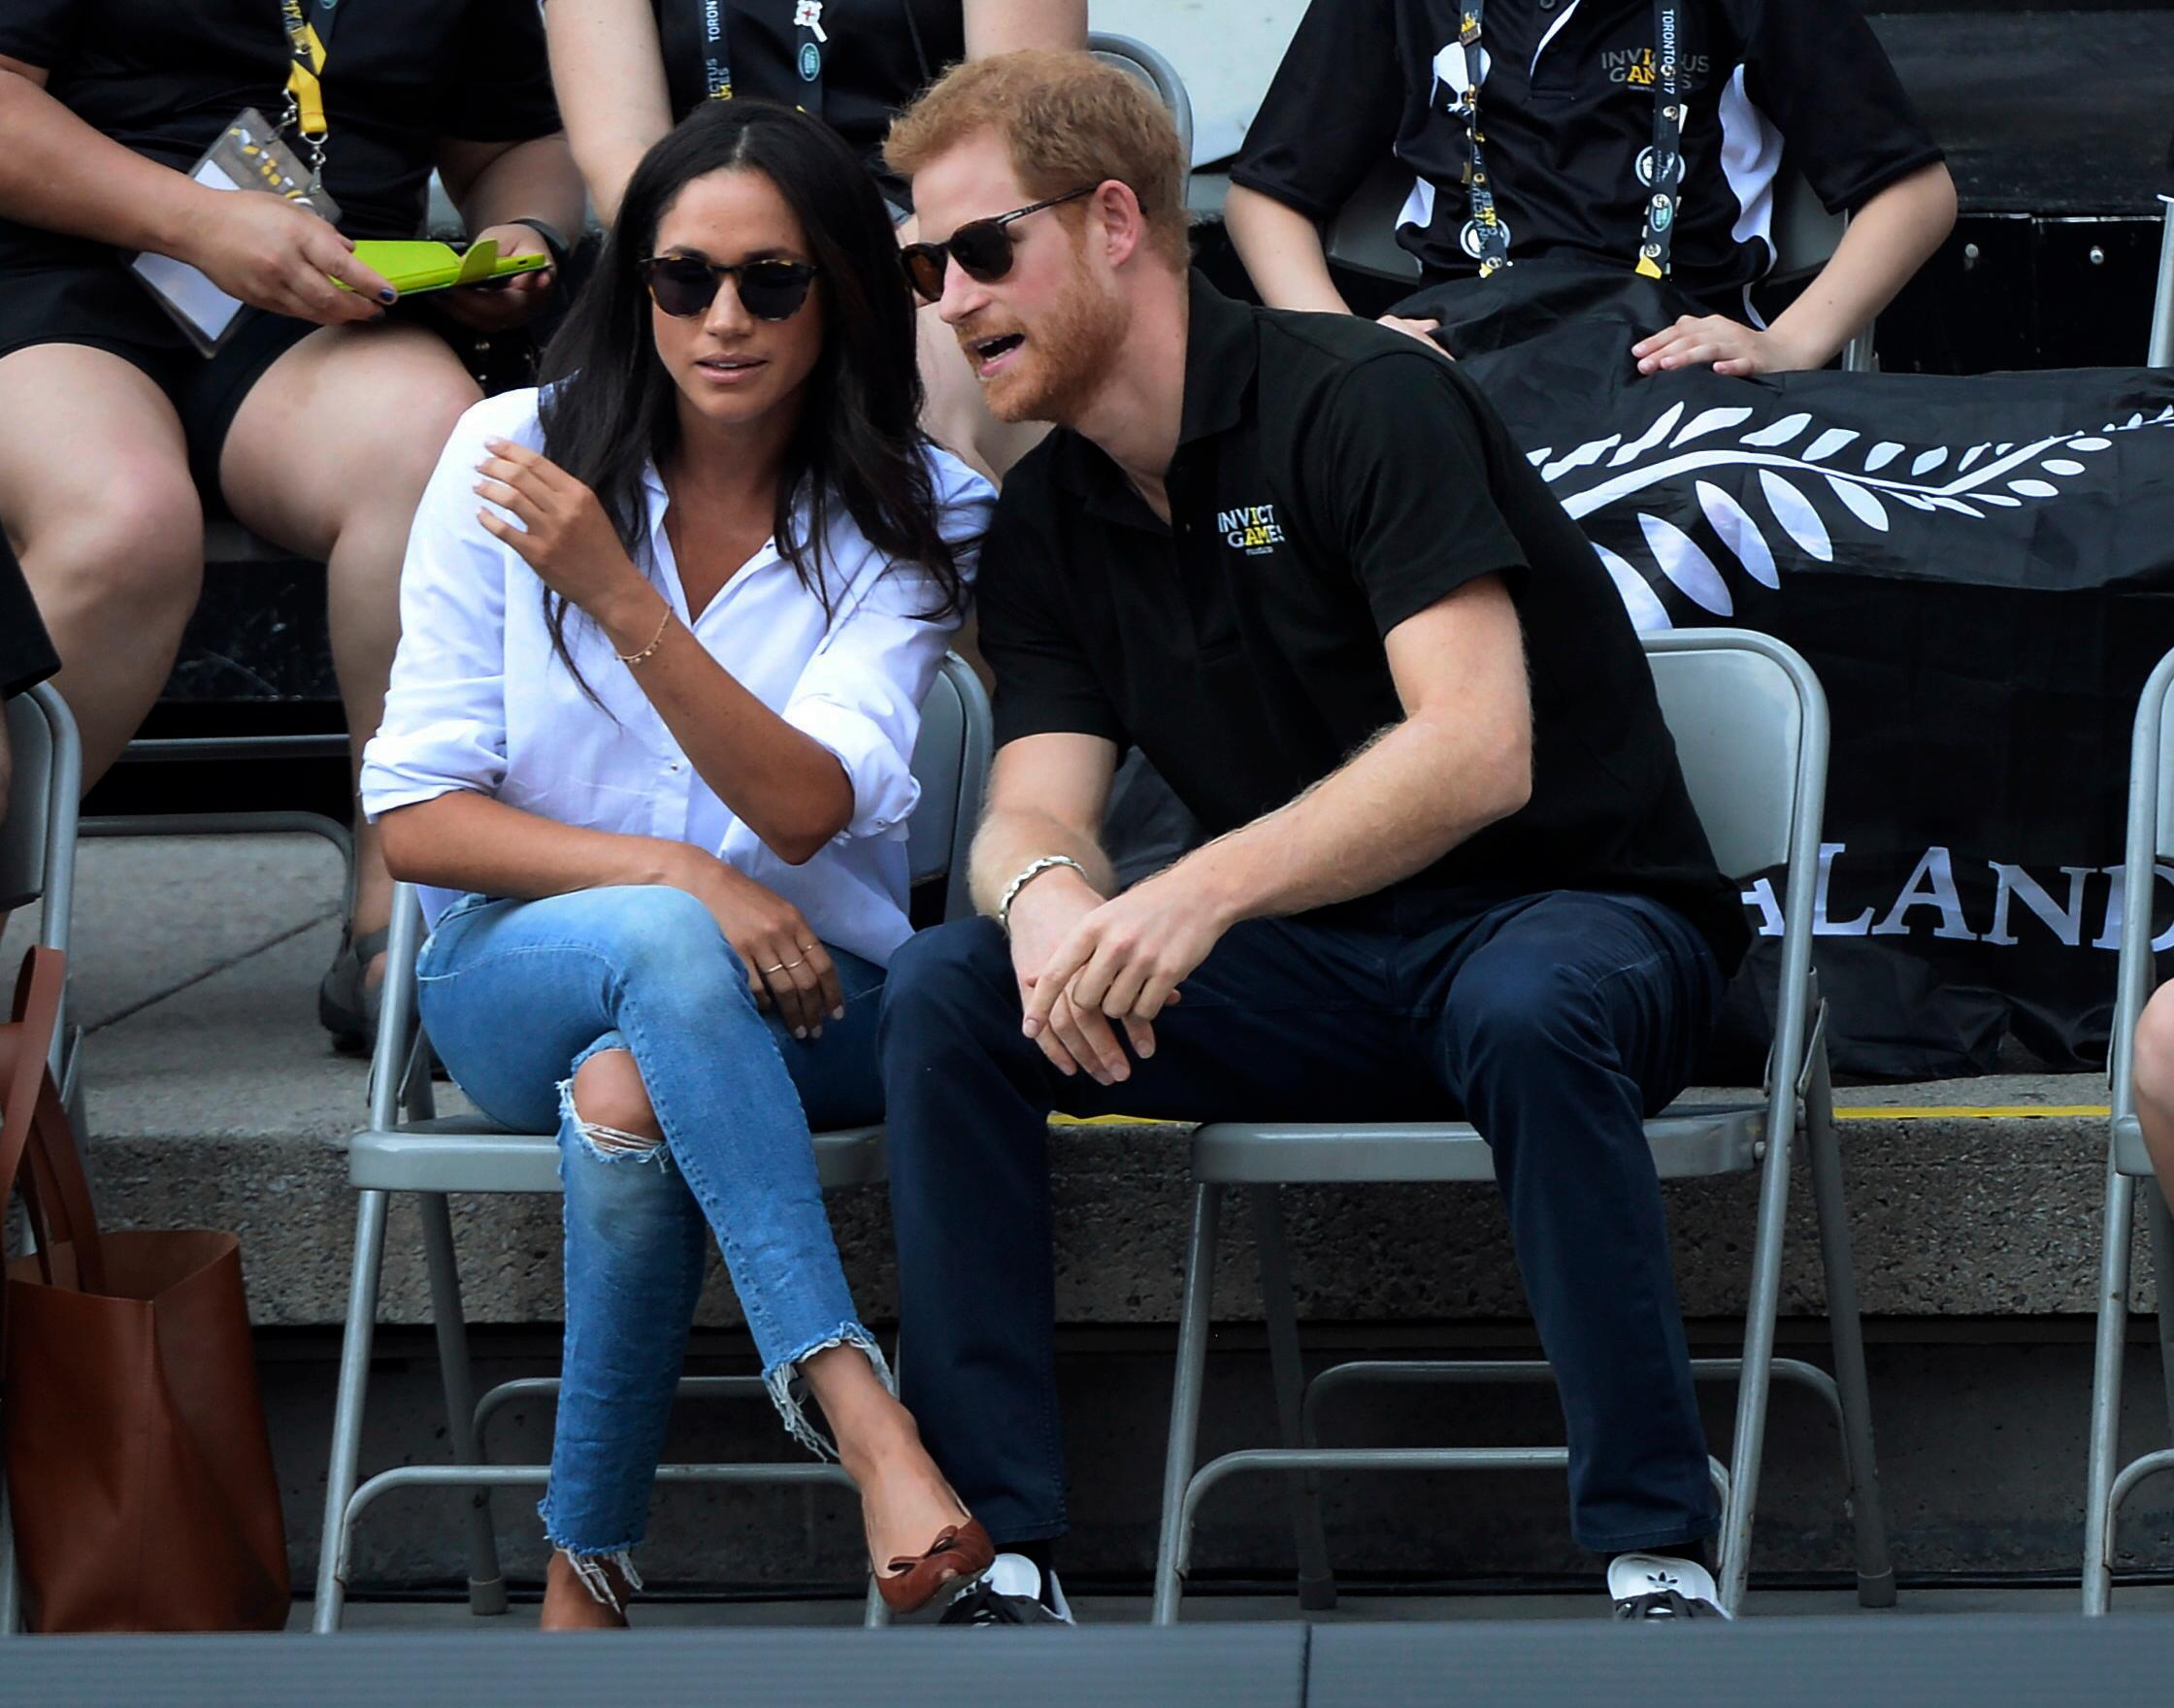 Prince Harry and his girlfriend Meghan Markle attend a wheelchair tennis event at the Invictus Games in Toronto, Monday, Sept. 25, 2017. (Nathan Denette/The Canadian Press via AP)